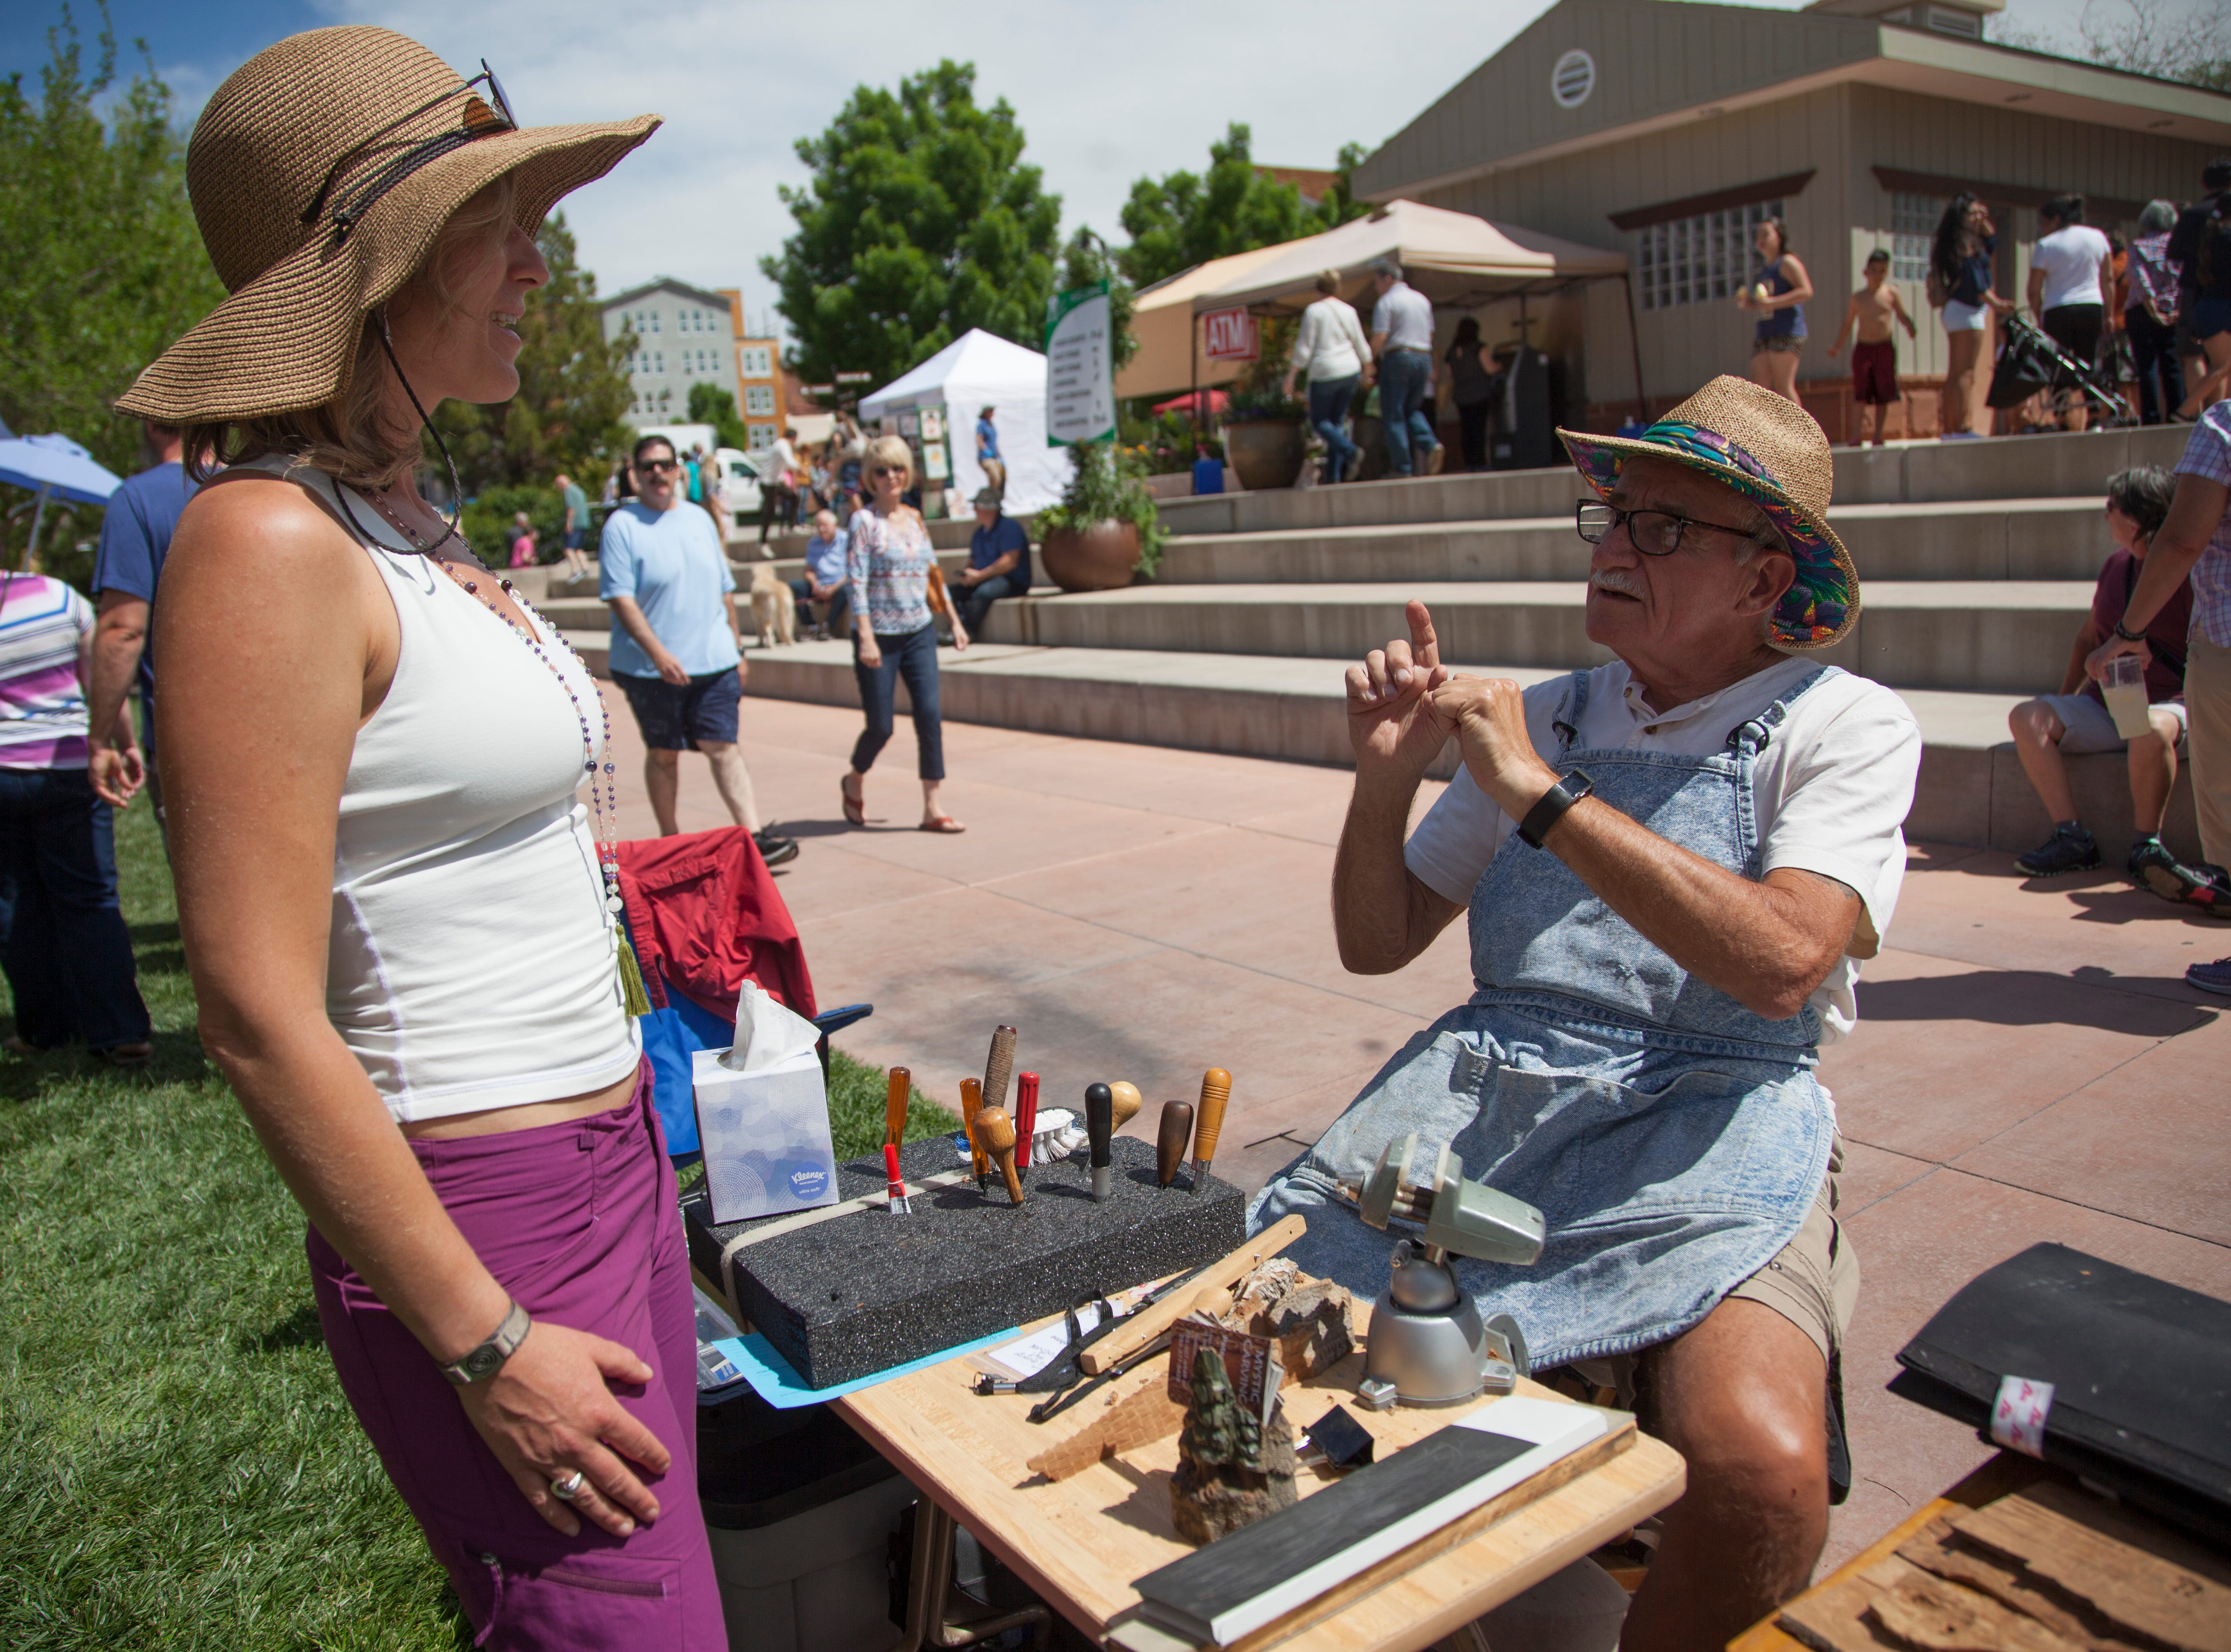 Community members enjoy art and entertainment at the St. George Art Festival Saturday, April 20, 2019.